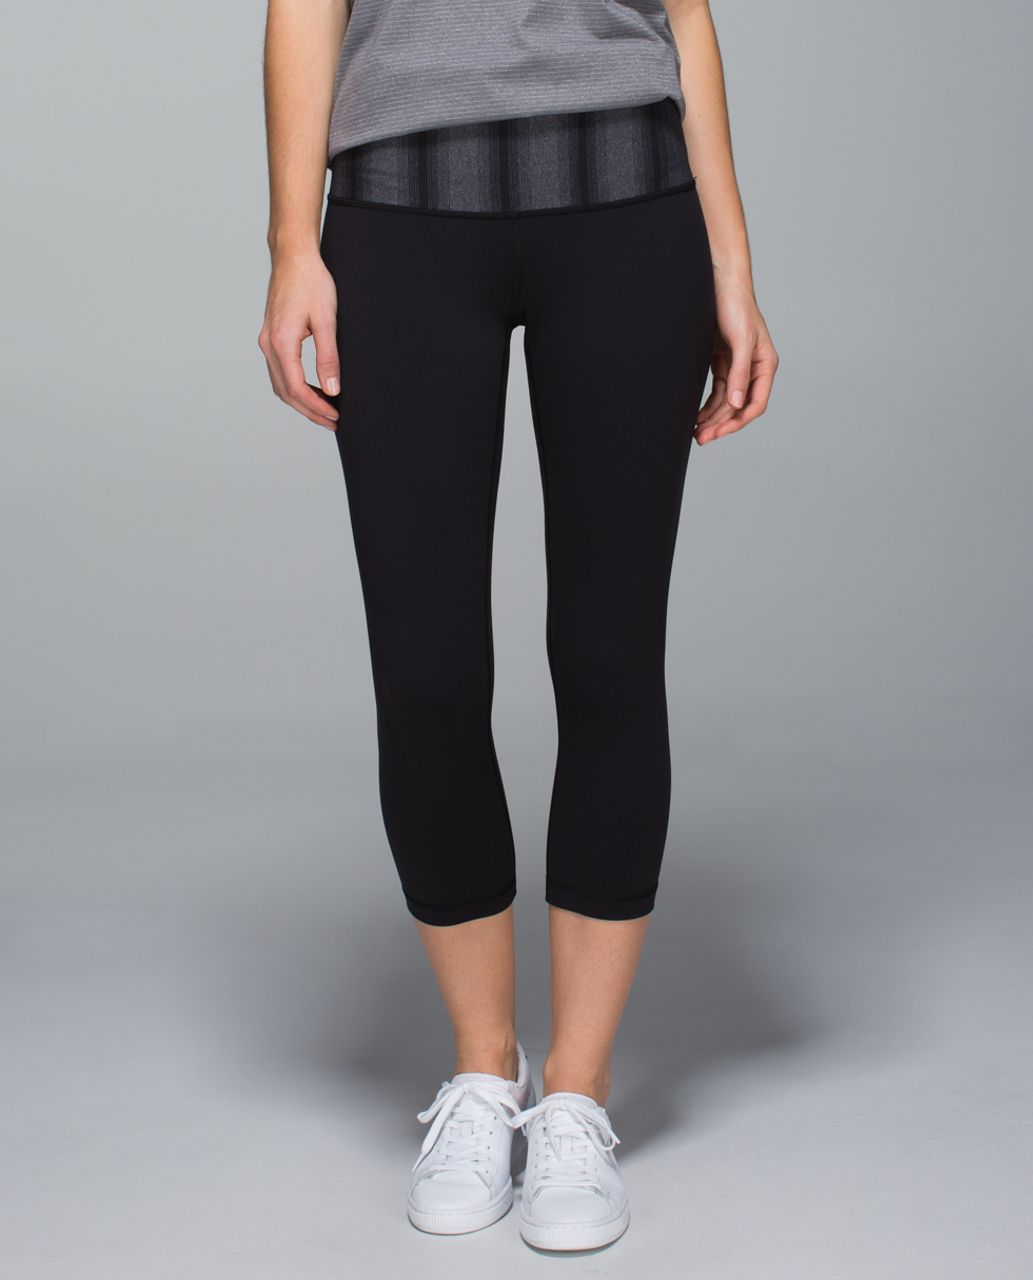 Lululemon Wunder Under Crop II *Full-On Luon (Roll Down) - Black / Capilano Stripe Heathered Deep Coal Black